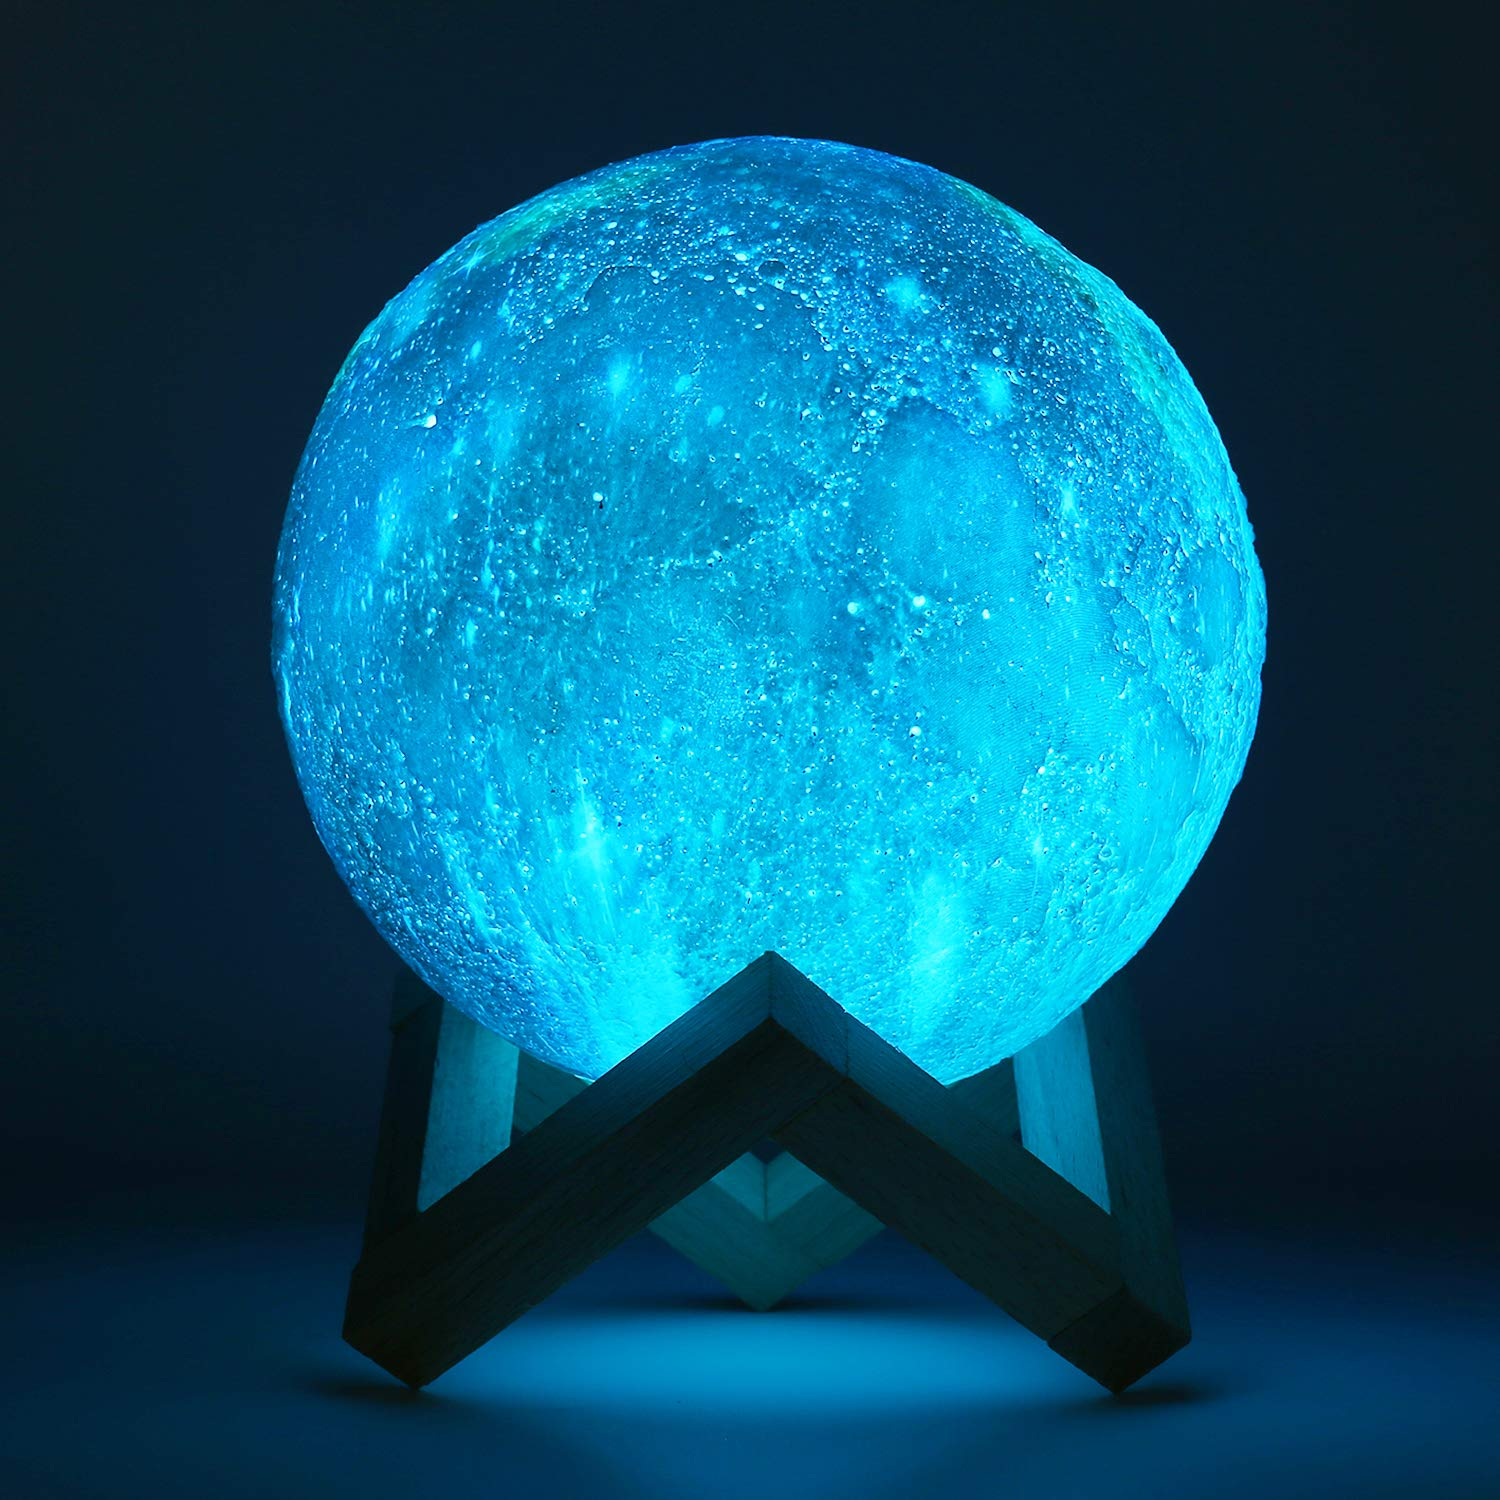 3D Moon Lamp ALED LIGHT RGB 16 Colors Space Moon Light 15cm Diameter Lunar Universe Starry Sky Night Light Lamp with Remote Control USB Charging Mood Light for Bedroom Cafe Bar Decoration Room